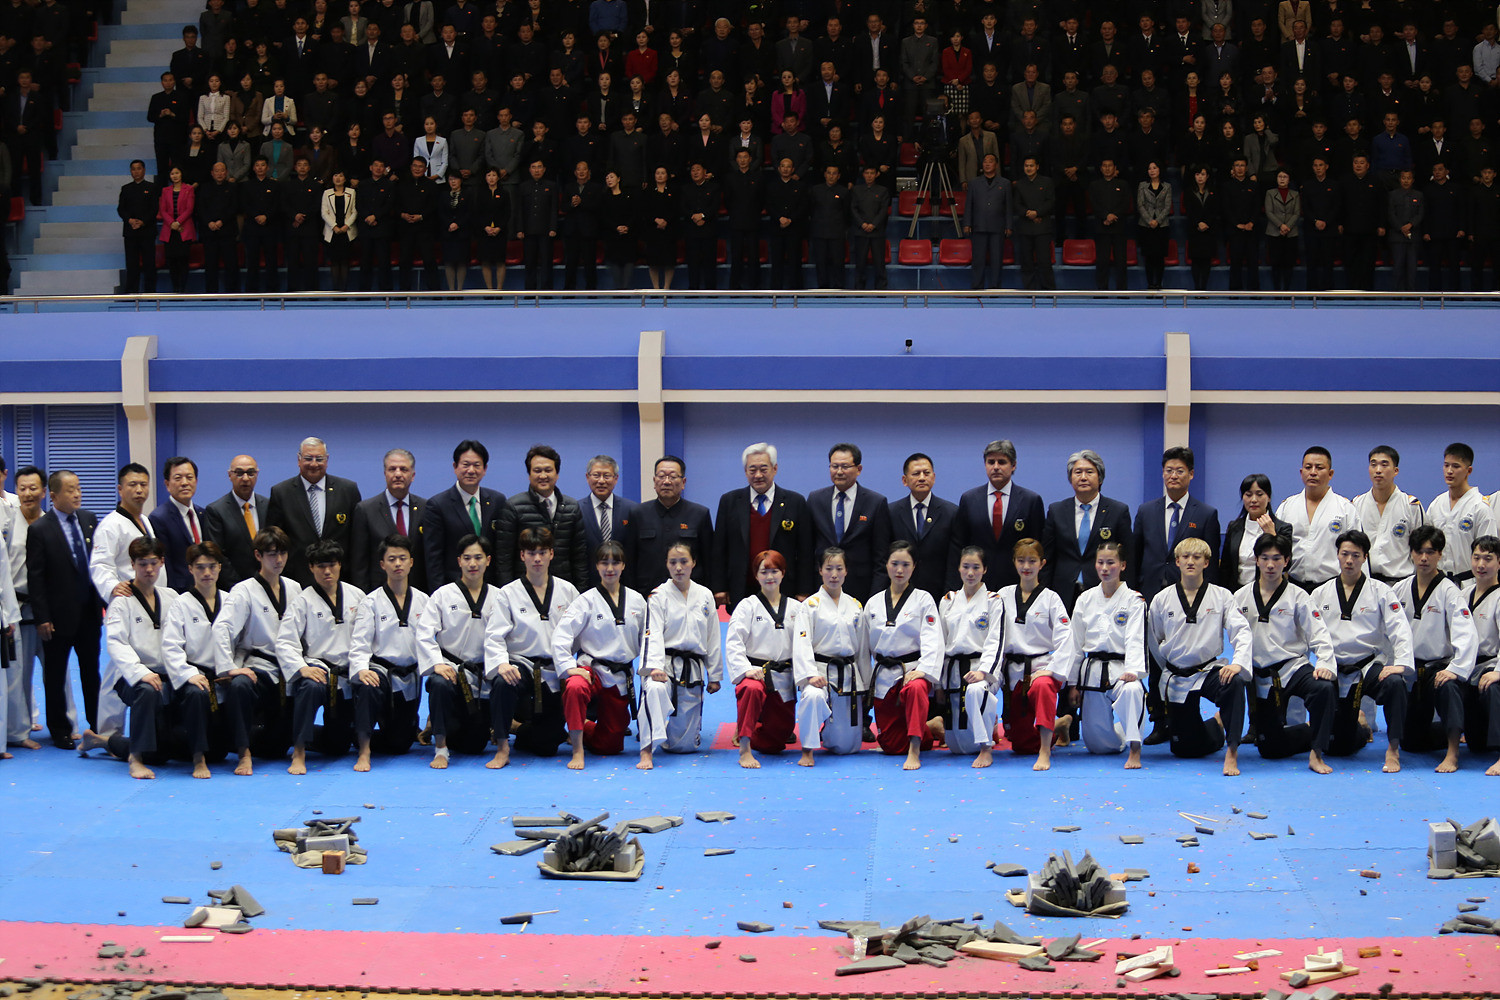 Joint taekwondo demonstrations by North Korean and South Korean athletes will be held next month to mark the 25 years since the sport was granted Olympic inclusion ©WTF